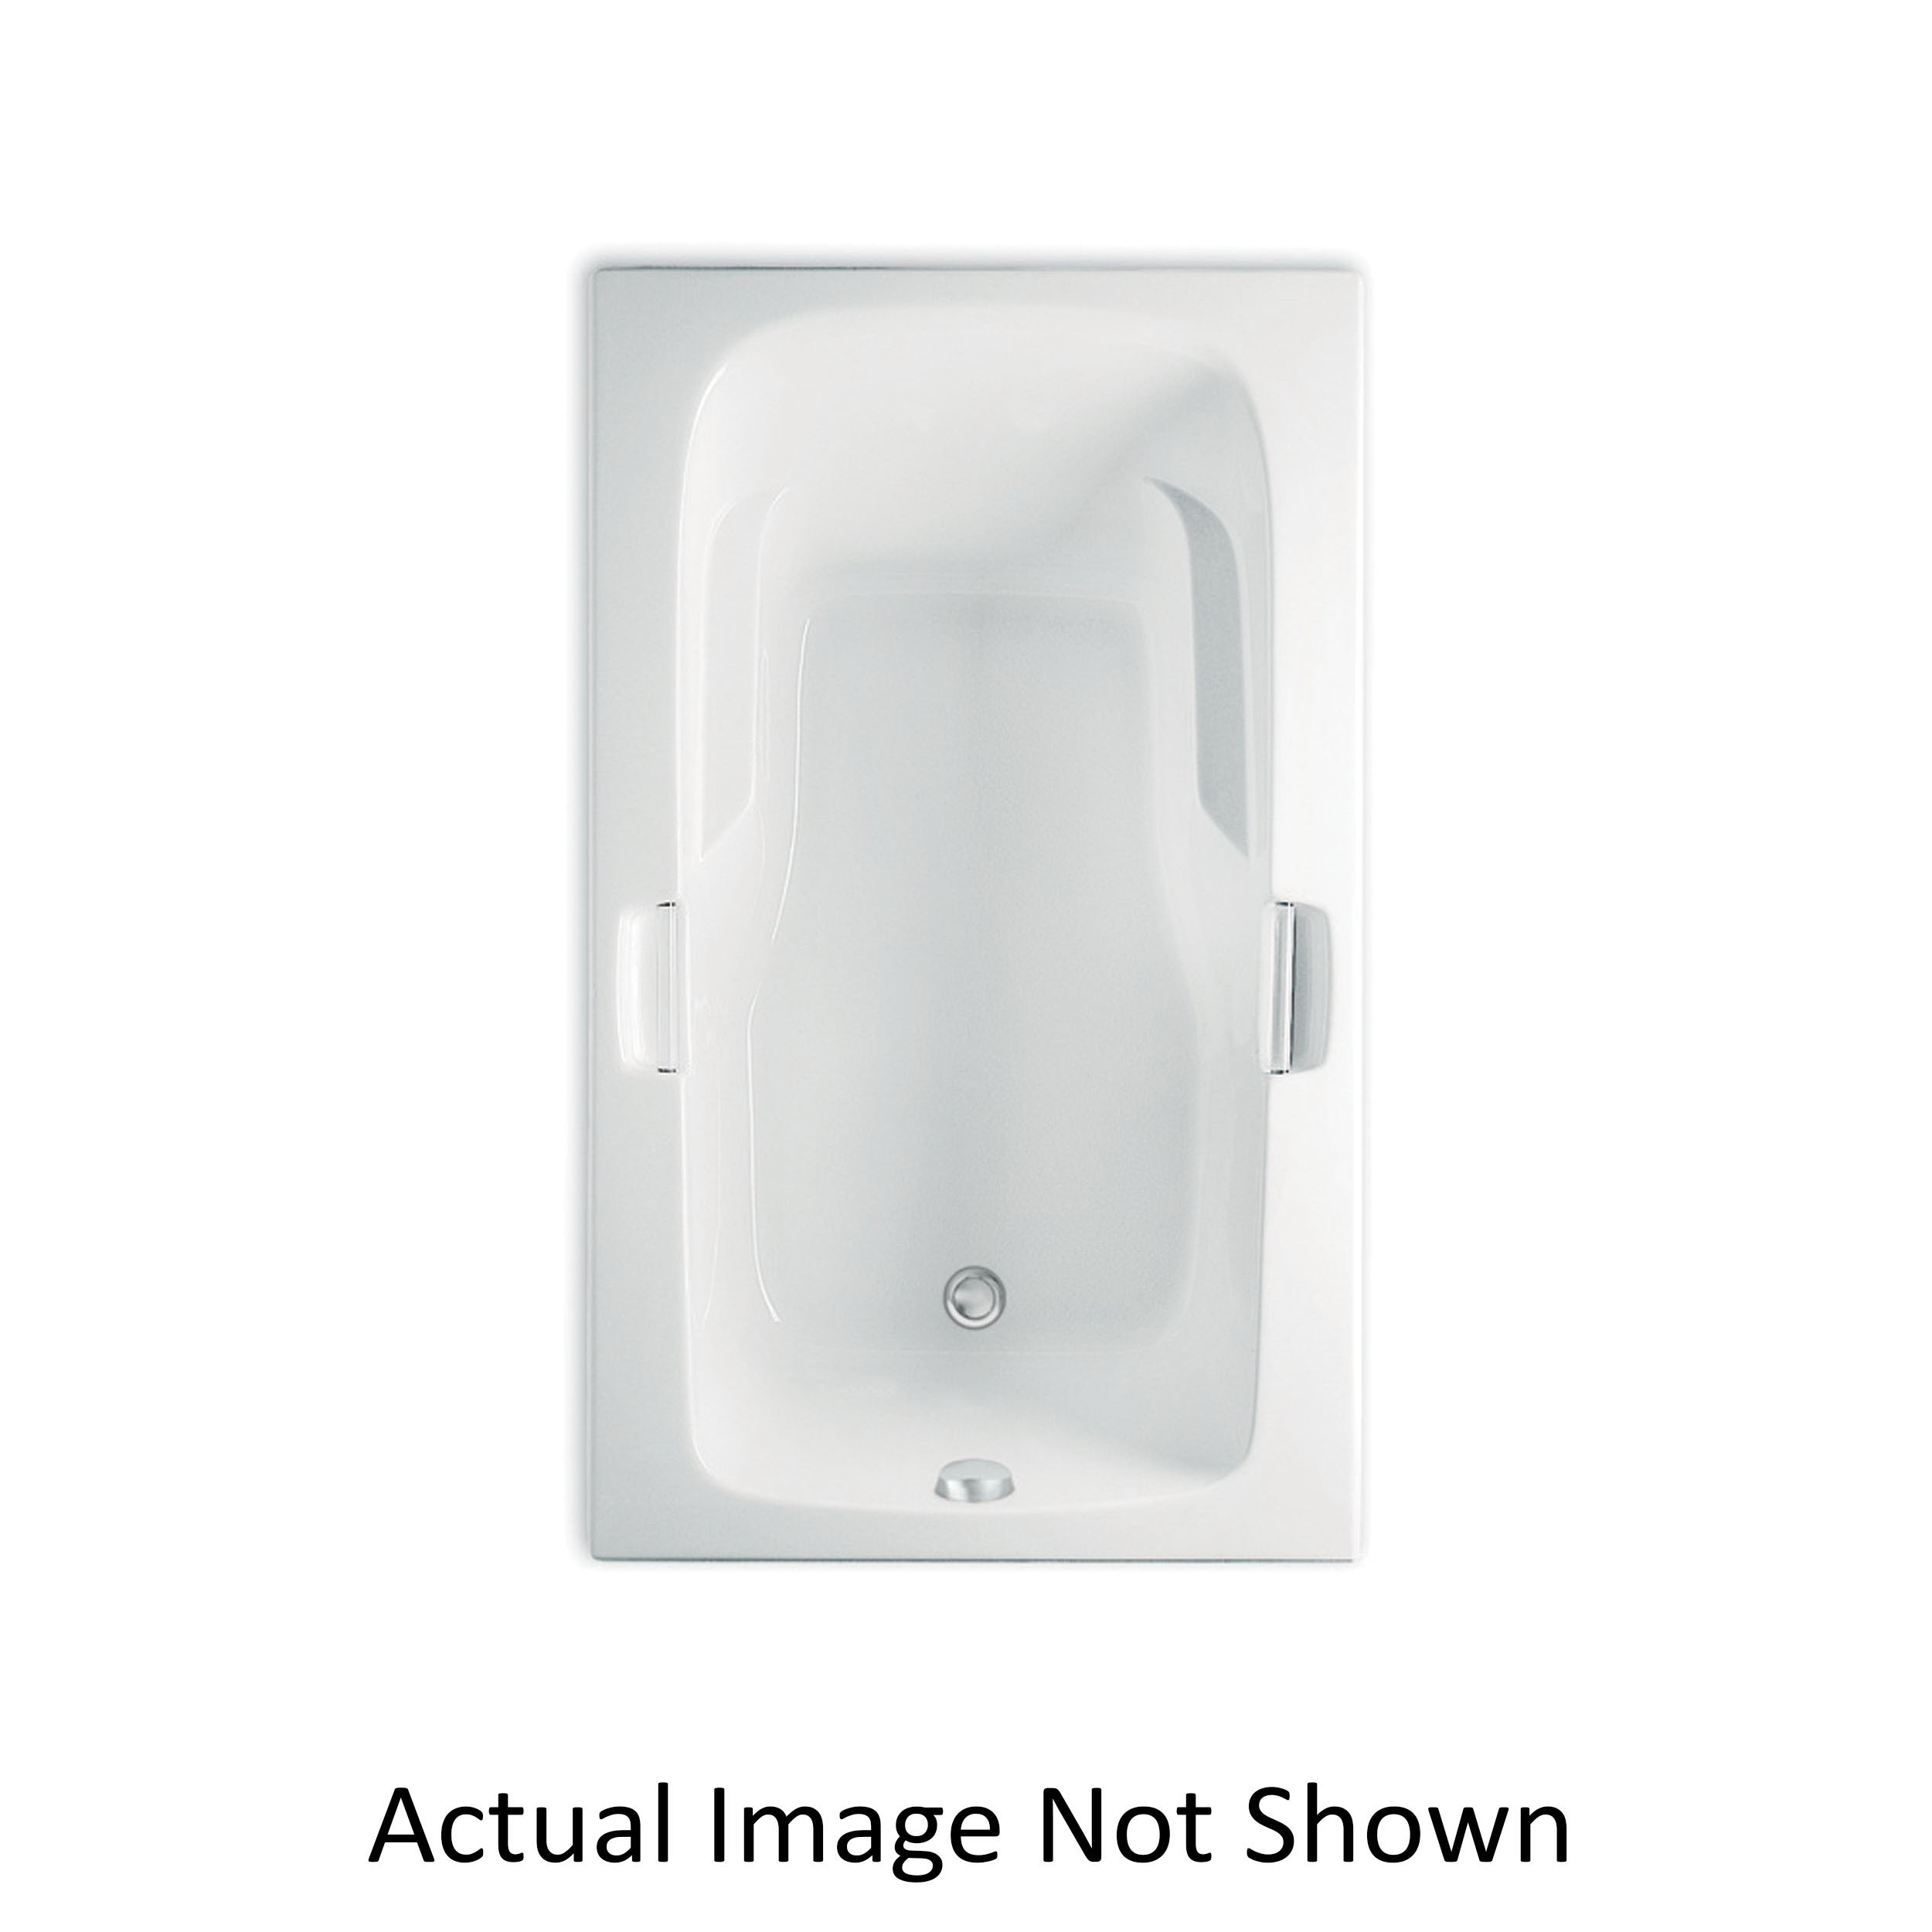 Aquatic Montrose I 4160620-WH Builders' Choice Soaker Bathtub Without Seat, Rectangle, 60 in L, 36 in W, Universal Drain